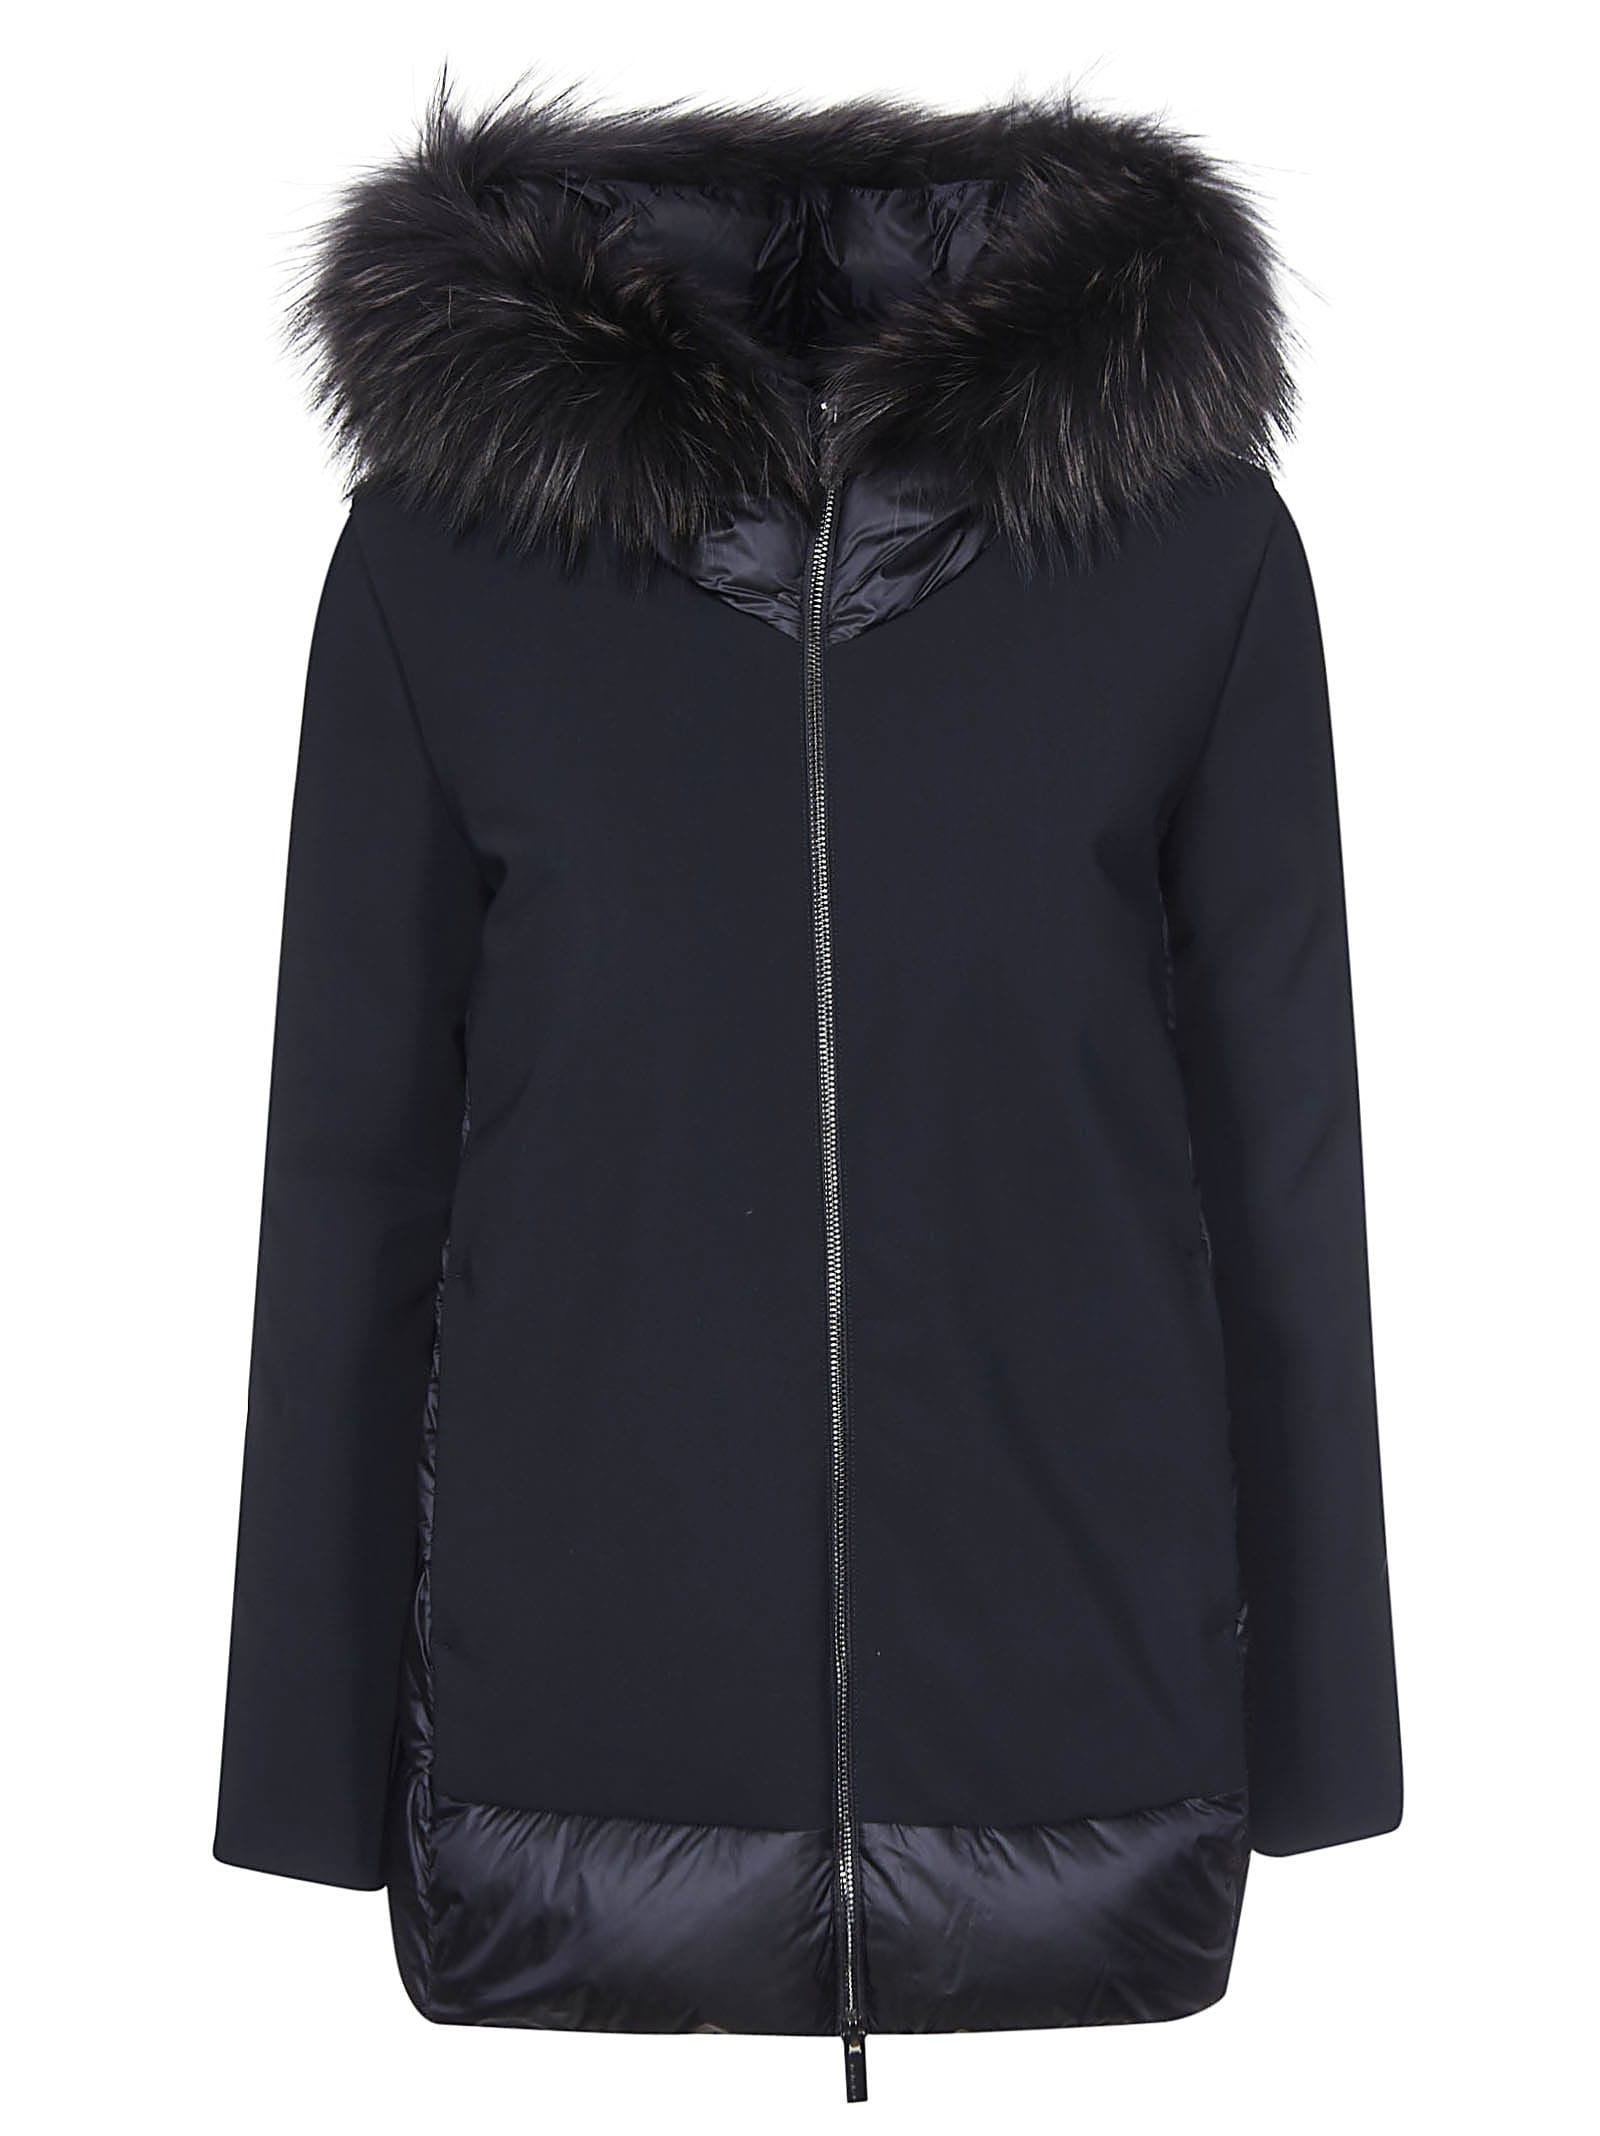 RRD - Roberto Ricci Design Back Padded Detail Hooded Furred Jacket